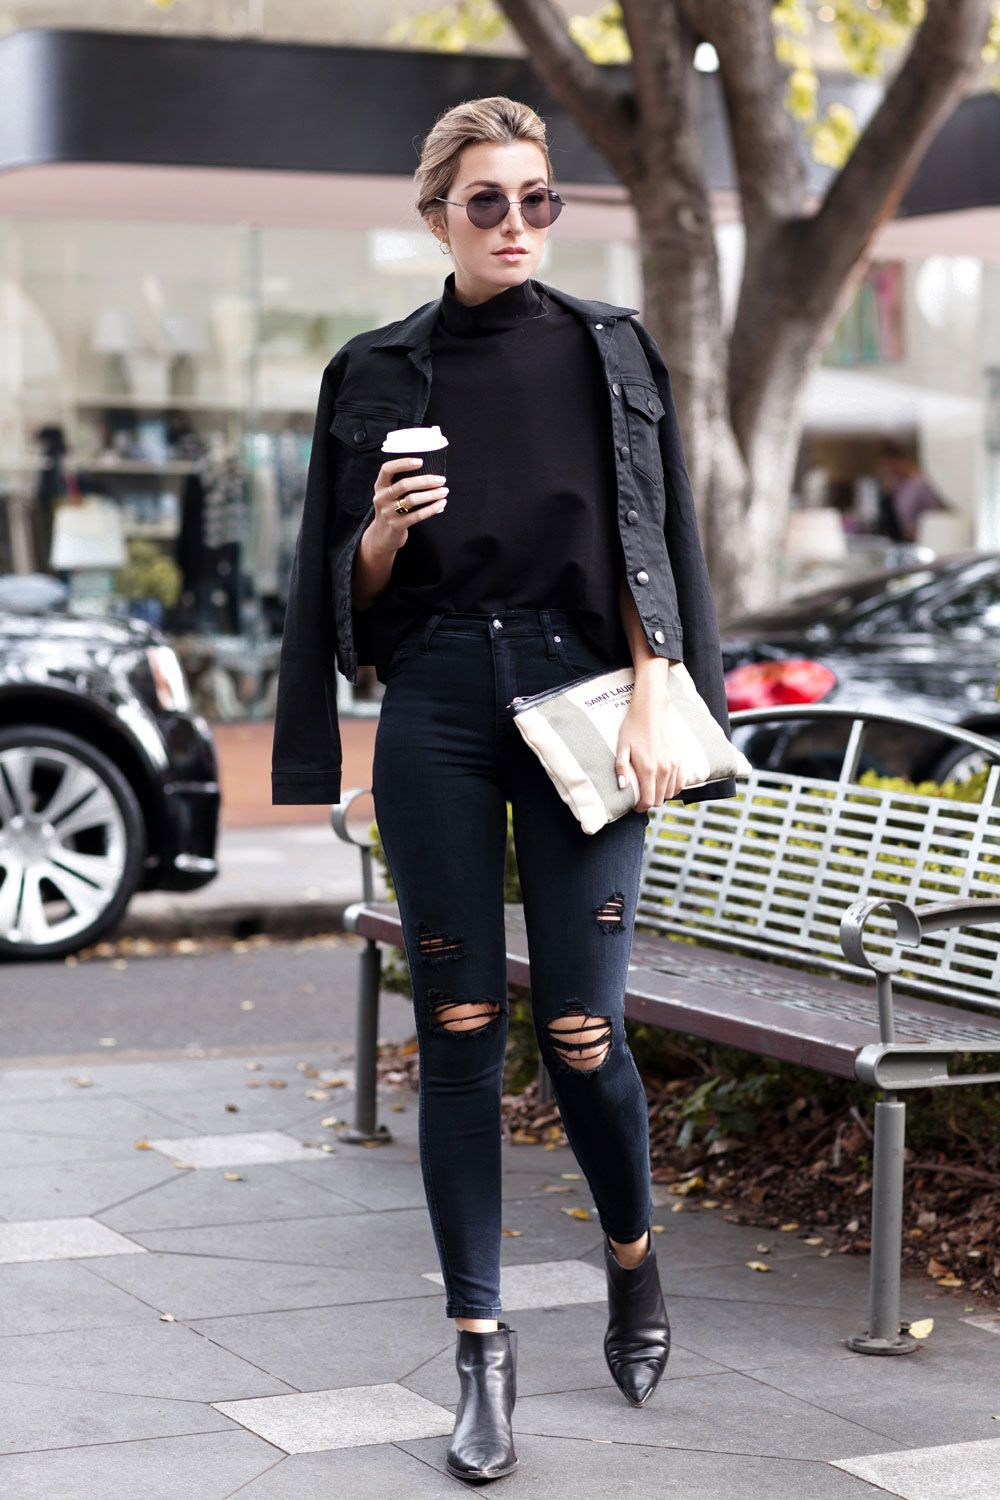 ways to wear black denim now Nobody Denim top jacket jeans Acne boots Saint  Laurent clutch Mykita x Margiela sunglasses